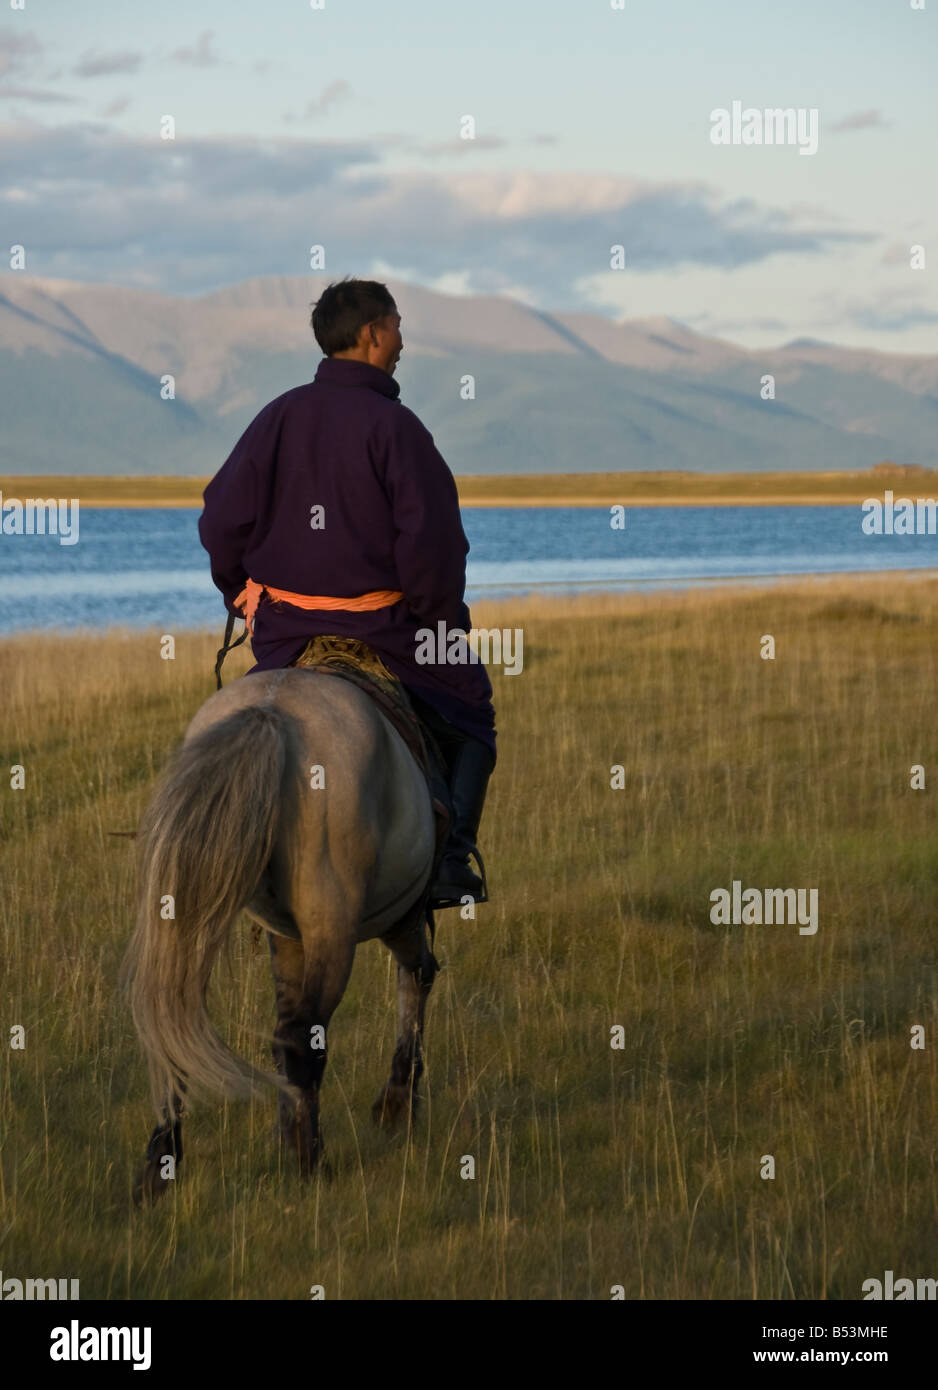 Nomad riding his horse North Mongolia - Stock Image